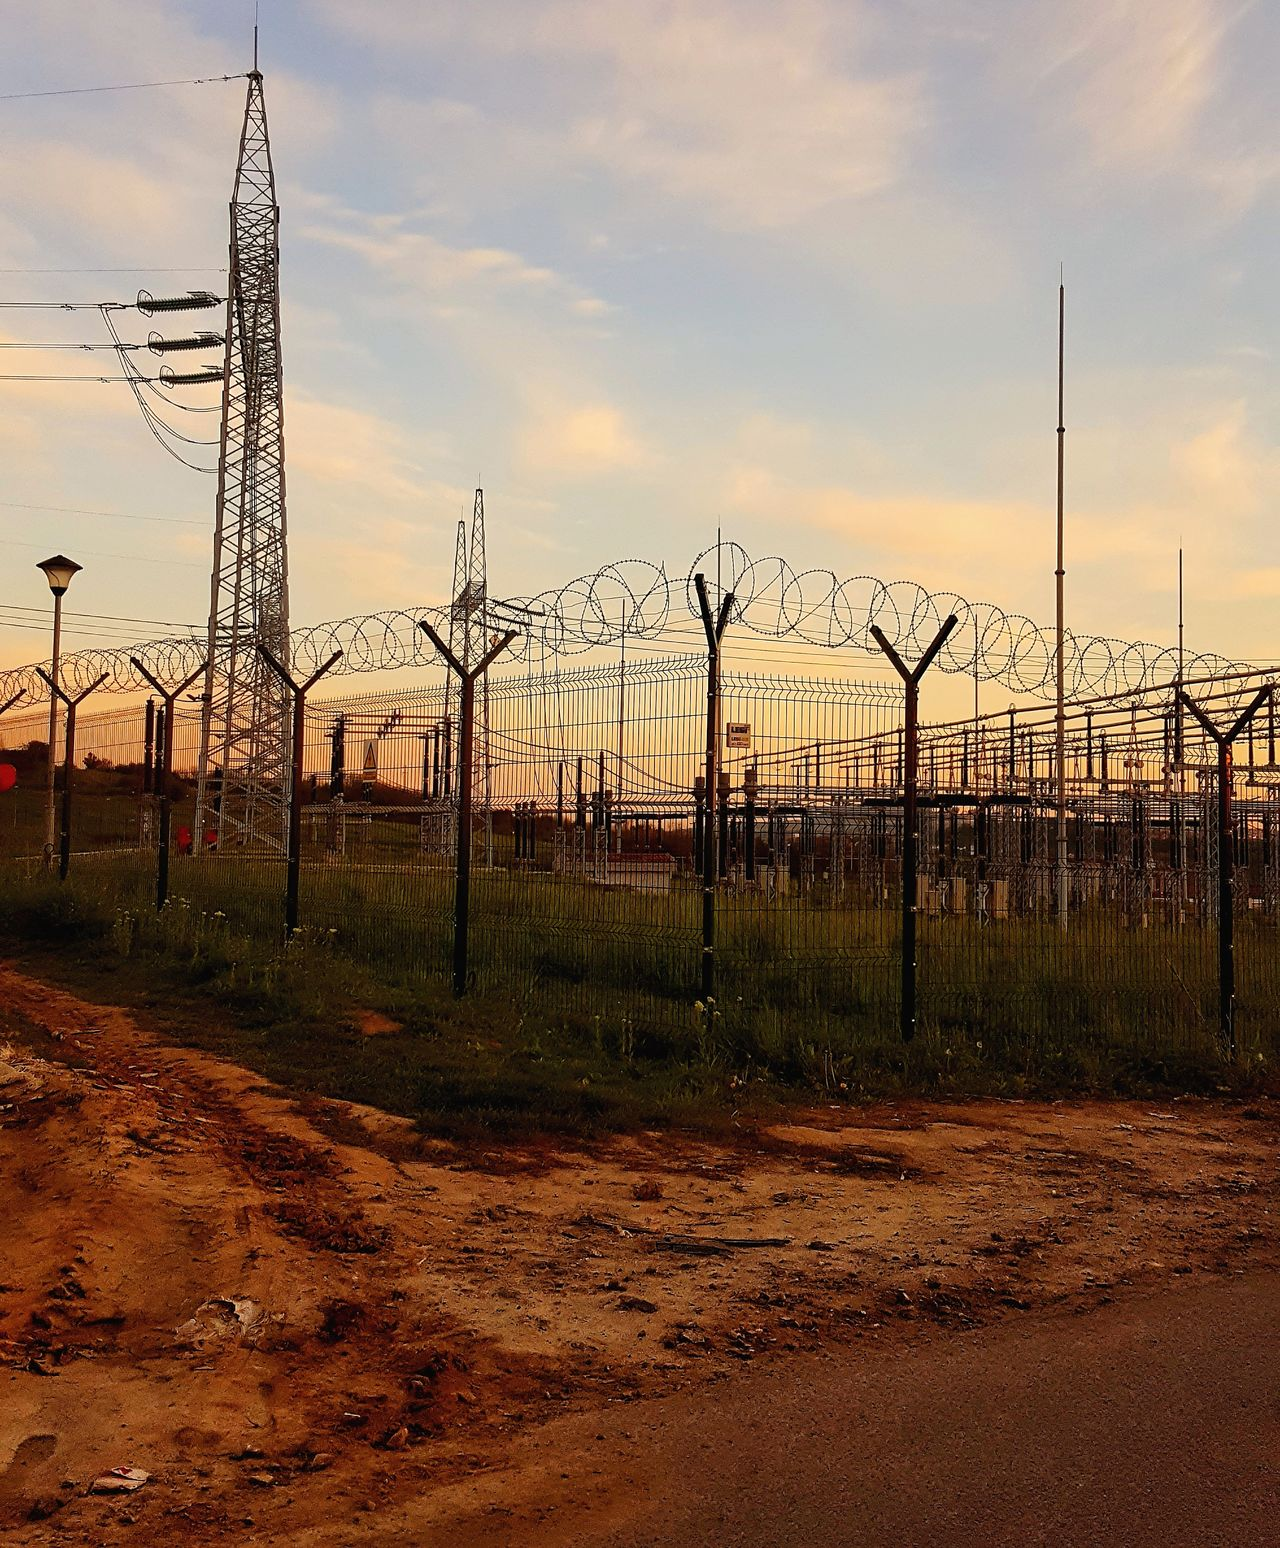 Outdoors Sky Electricity  Power Plant Wire Energy Industry Technology Sky And Clouds Voltage No People Supply Enviroment Production Fence Prison Dawn Station Silhouette Steel